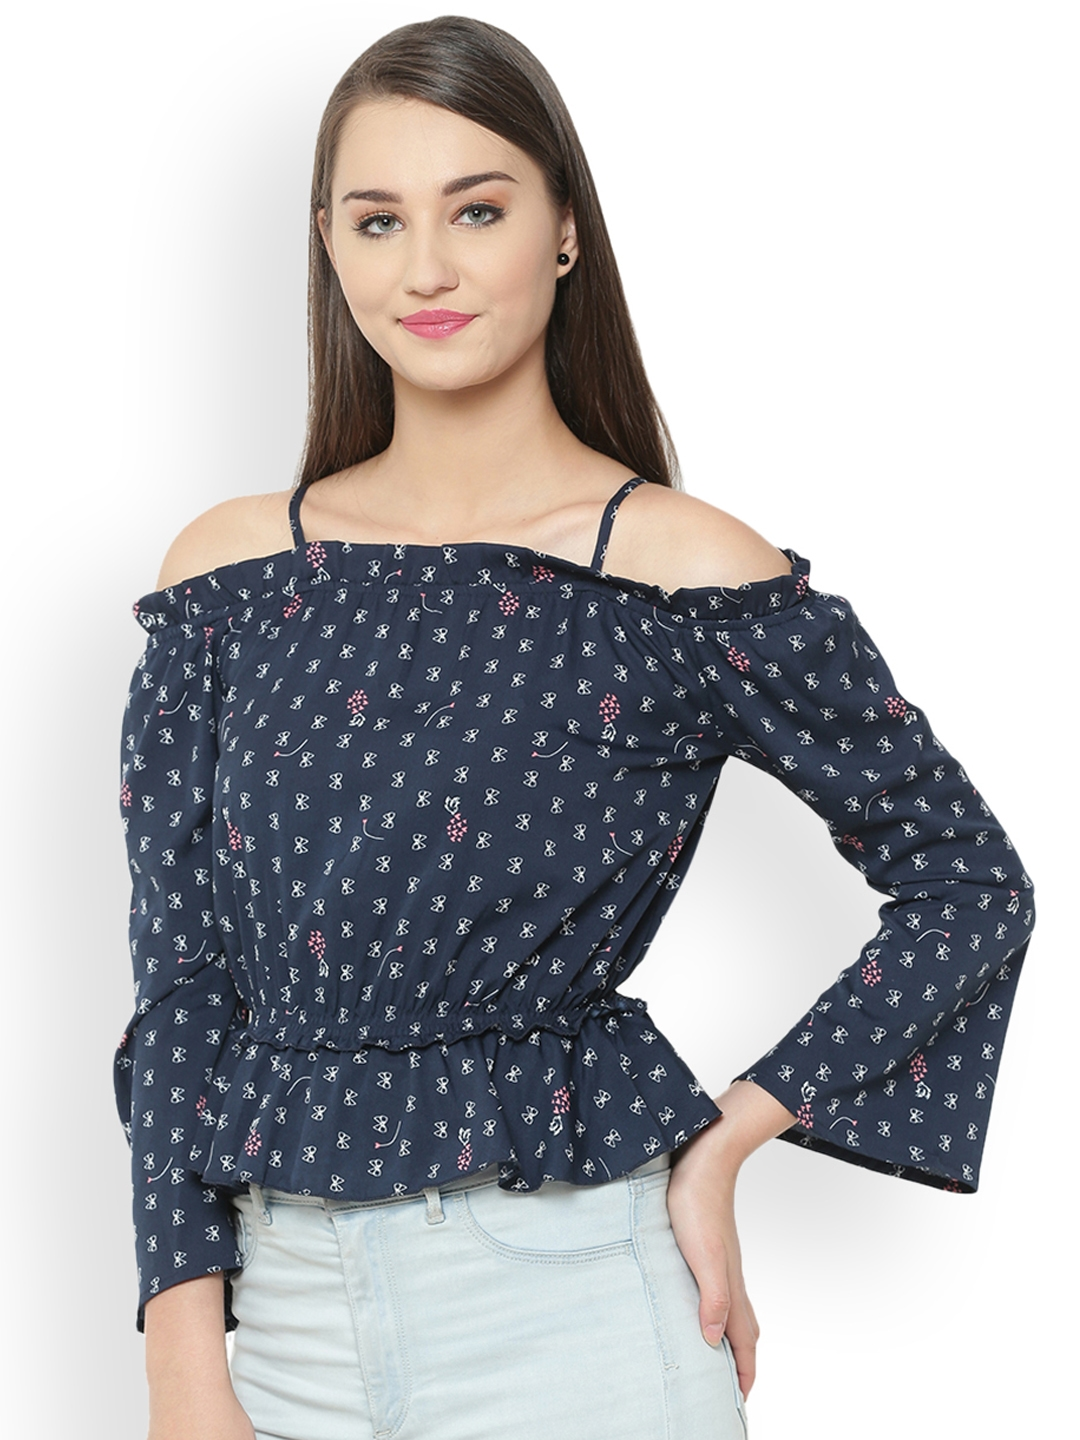 6a7323209ce95 Buy The Gud Look Women Blue Printed Blouson Top - Tops for Women ...